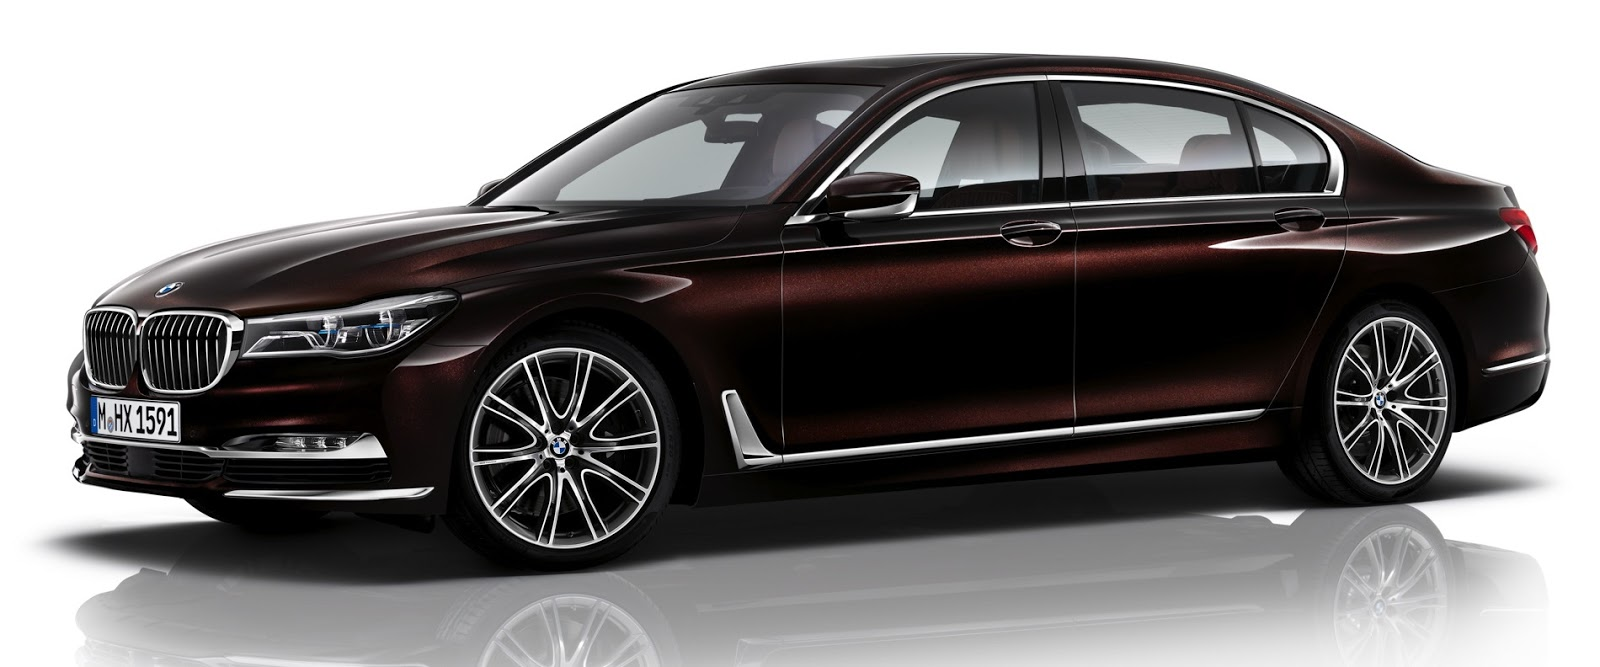 Top 10 Luxury Sedans Cars To Look Out For In 2016 Wagenclub